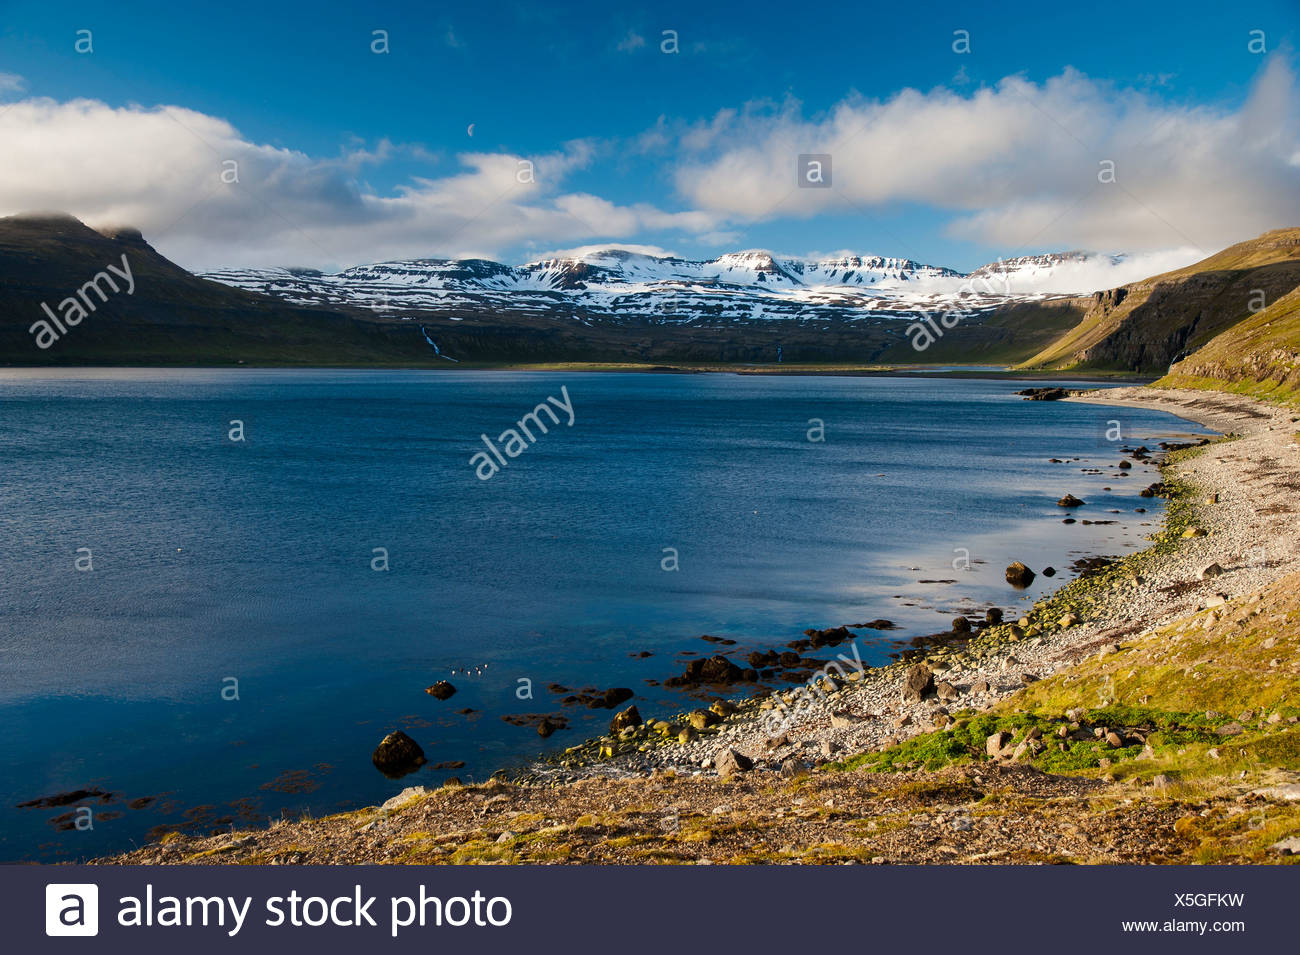 View towards the hinterland from Hornvik Bay, stone beach on the hiking trail to the bird cliffs of Hornbjarg, Hornstrandir - Stock Image